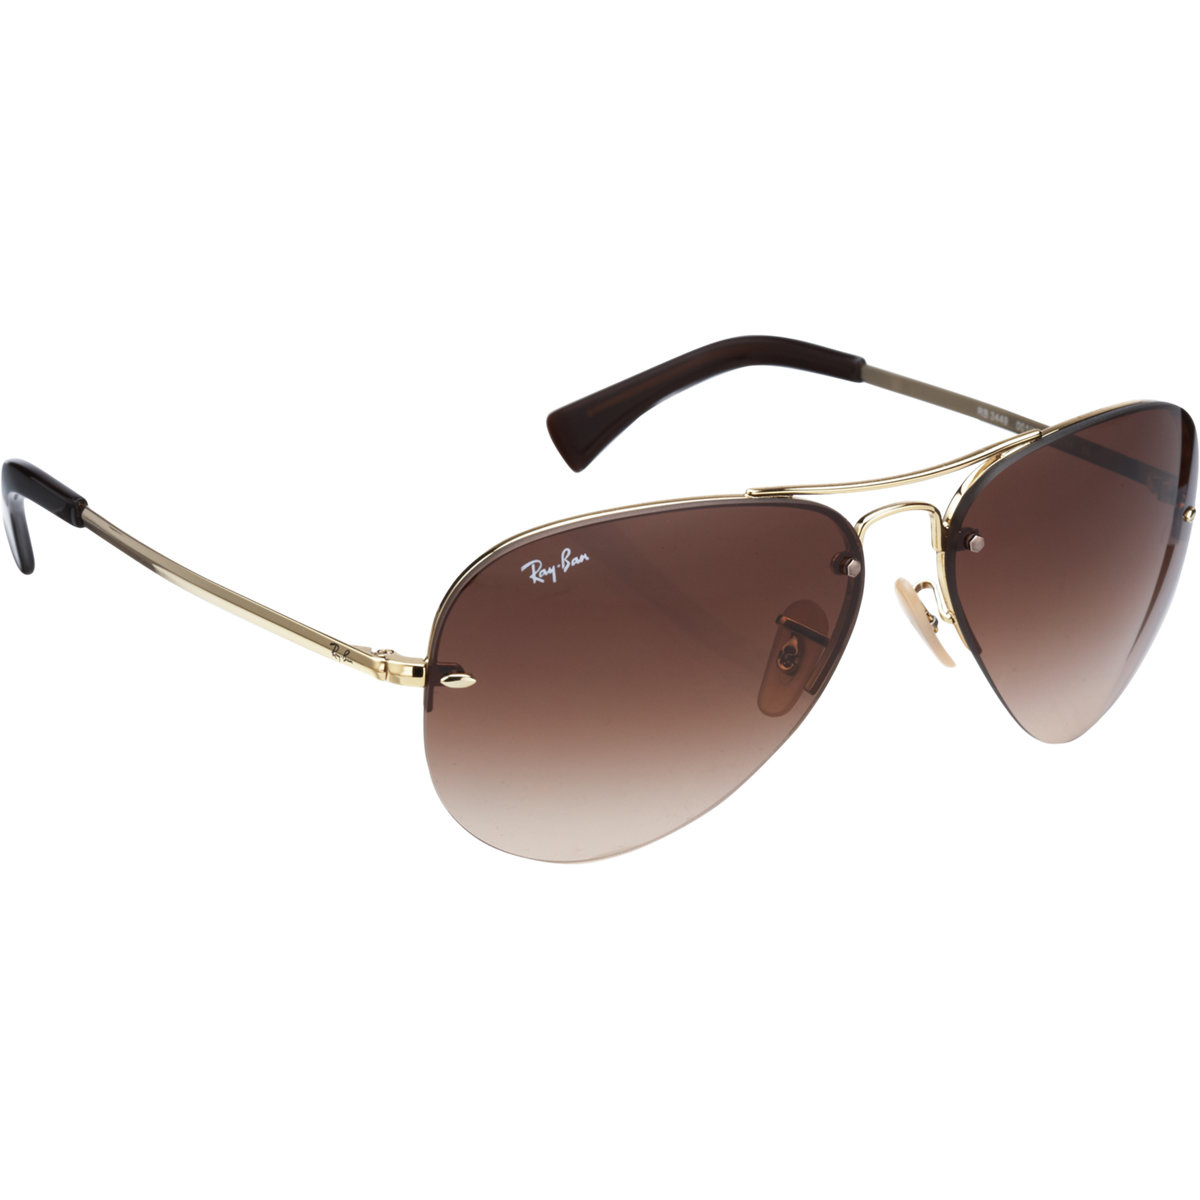 a3d84d151 Ray-Ban Rimless Aviator in Metallic for Men - Lyst